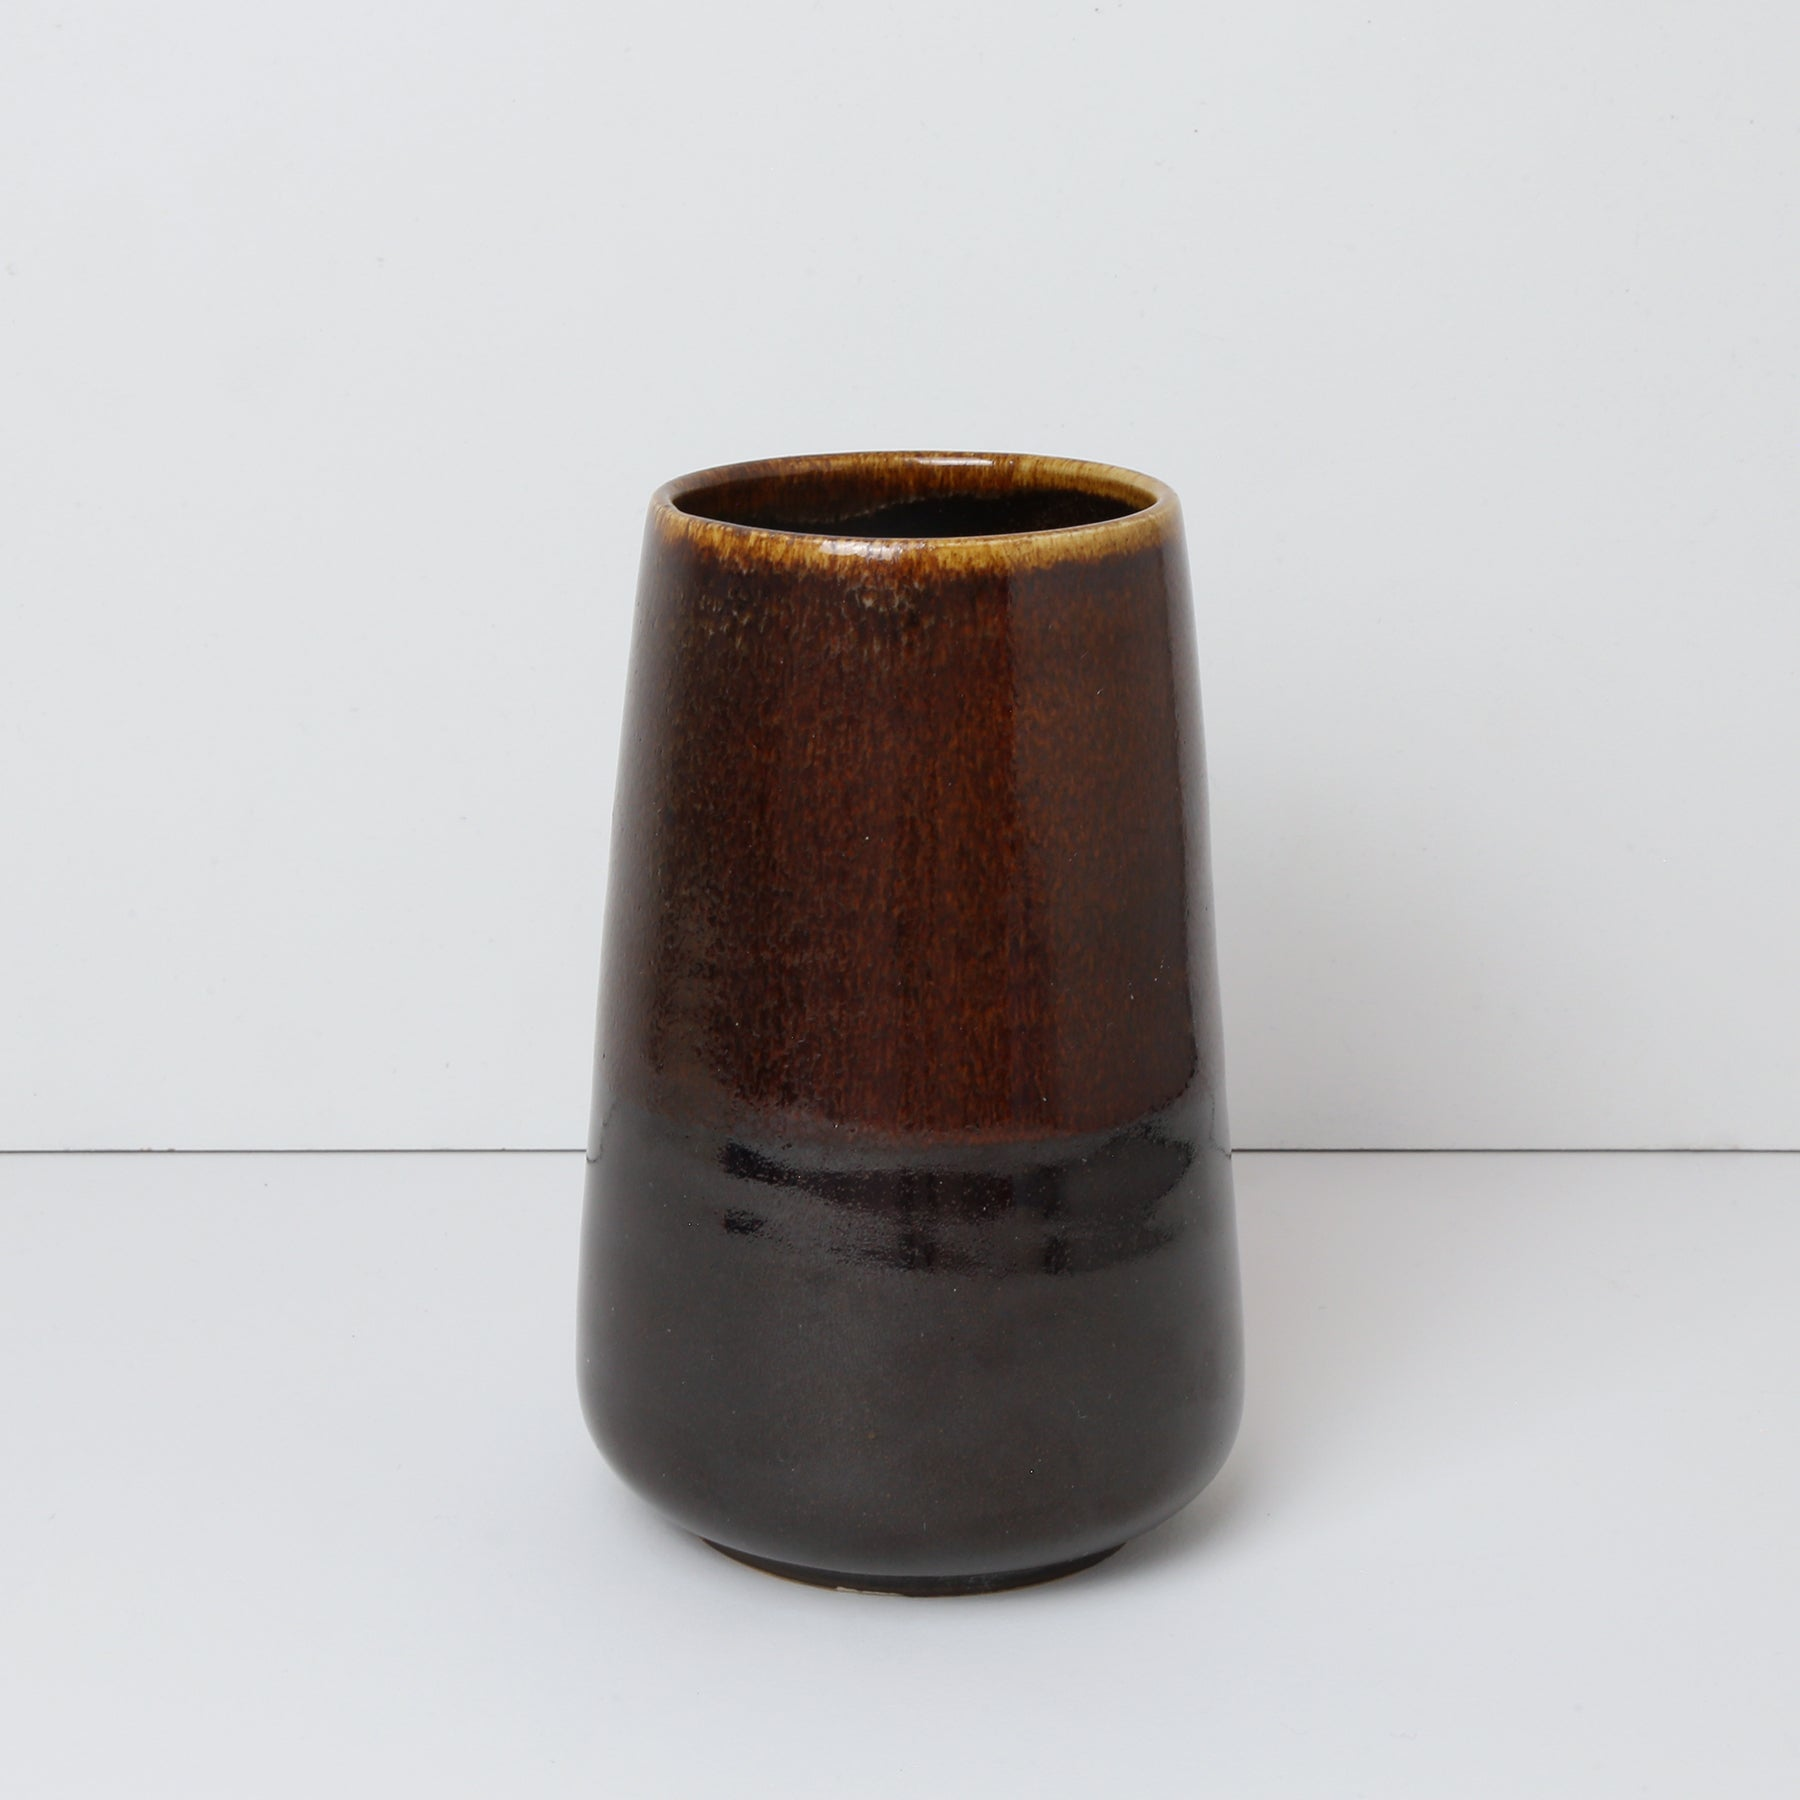 Small Vase, Chocolate Fudge